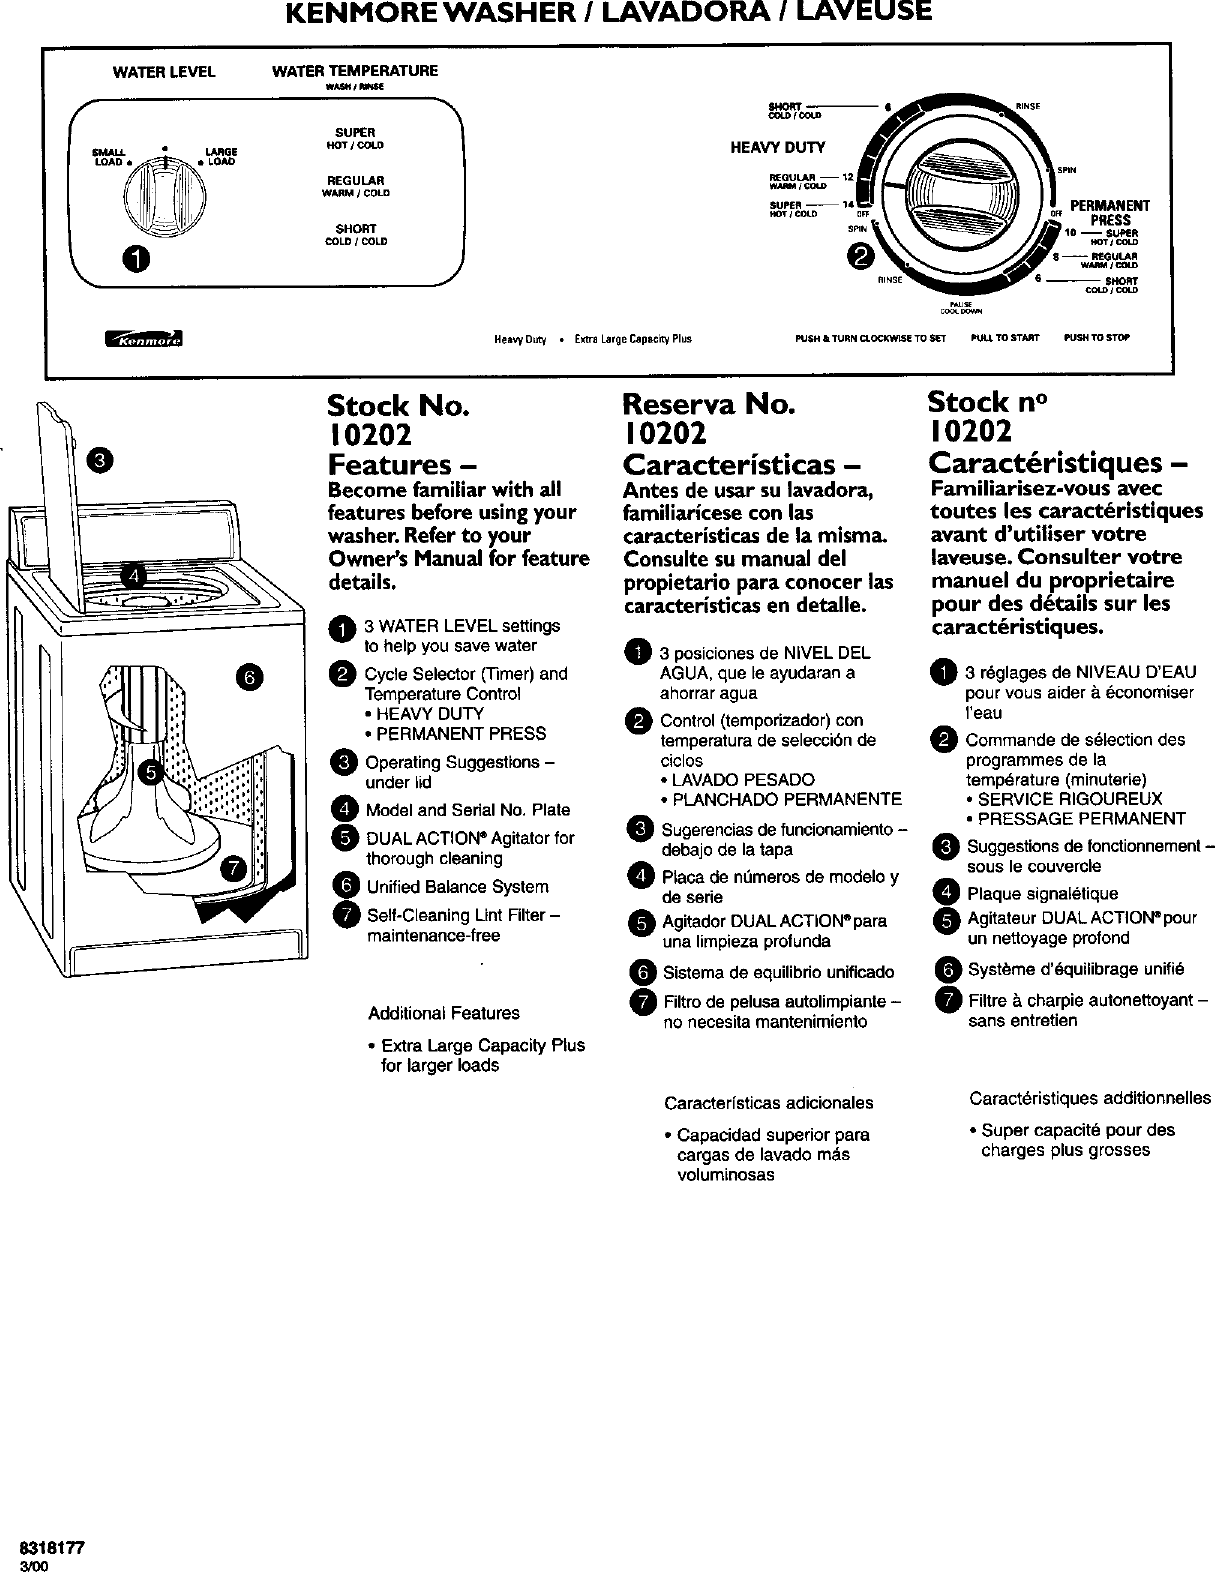 KENMORE Residential Washers Manual L0050206